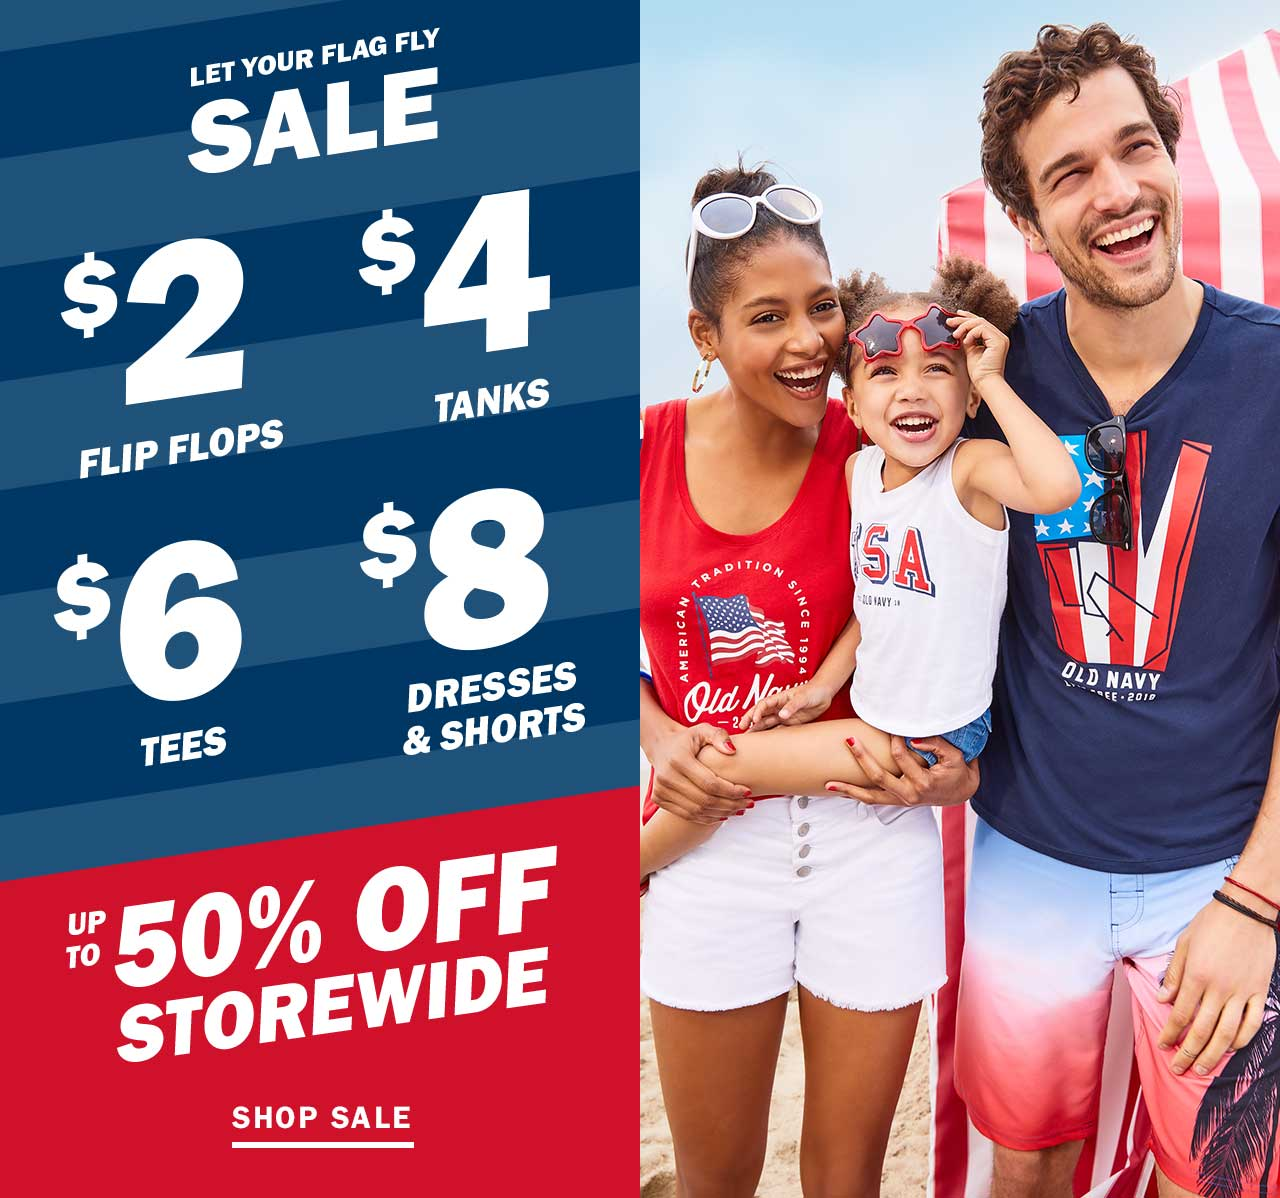 Old Navy: 🇺🇸 Let Your Flag Fly Sale 🇺🇸 Styles from $2, $4, $6 ...